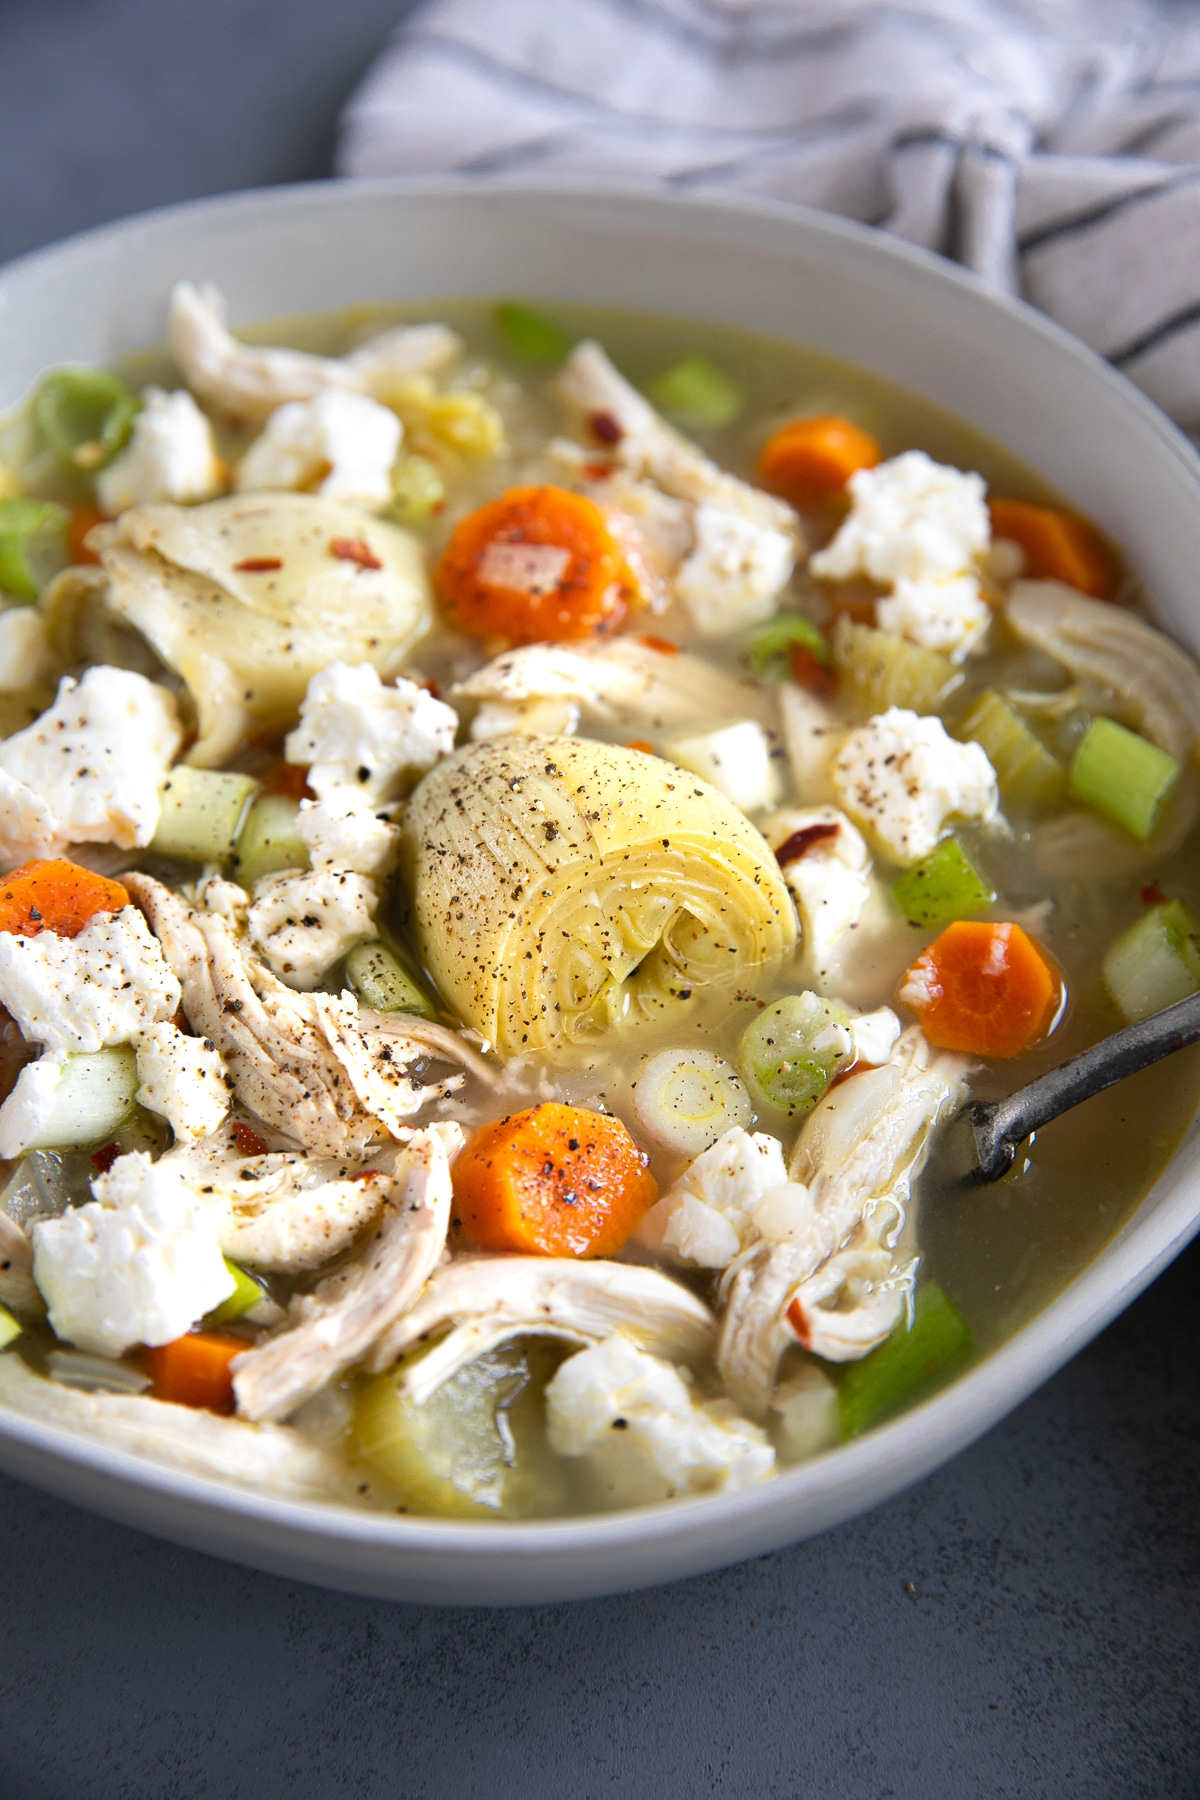 White bowl filled with lemon and artichoke chicken soup and garnished with crumbled feta cheese and red chili flakes.